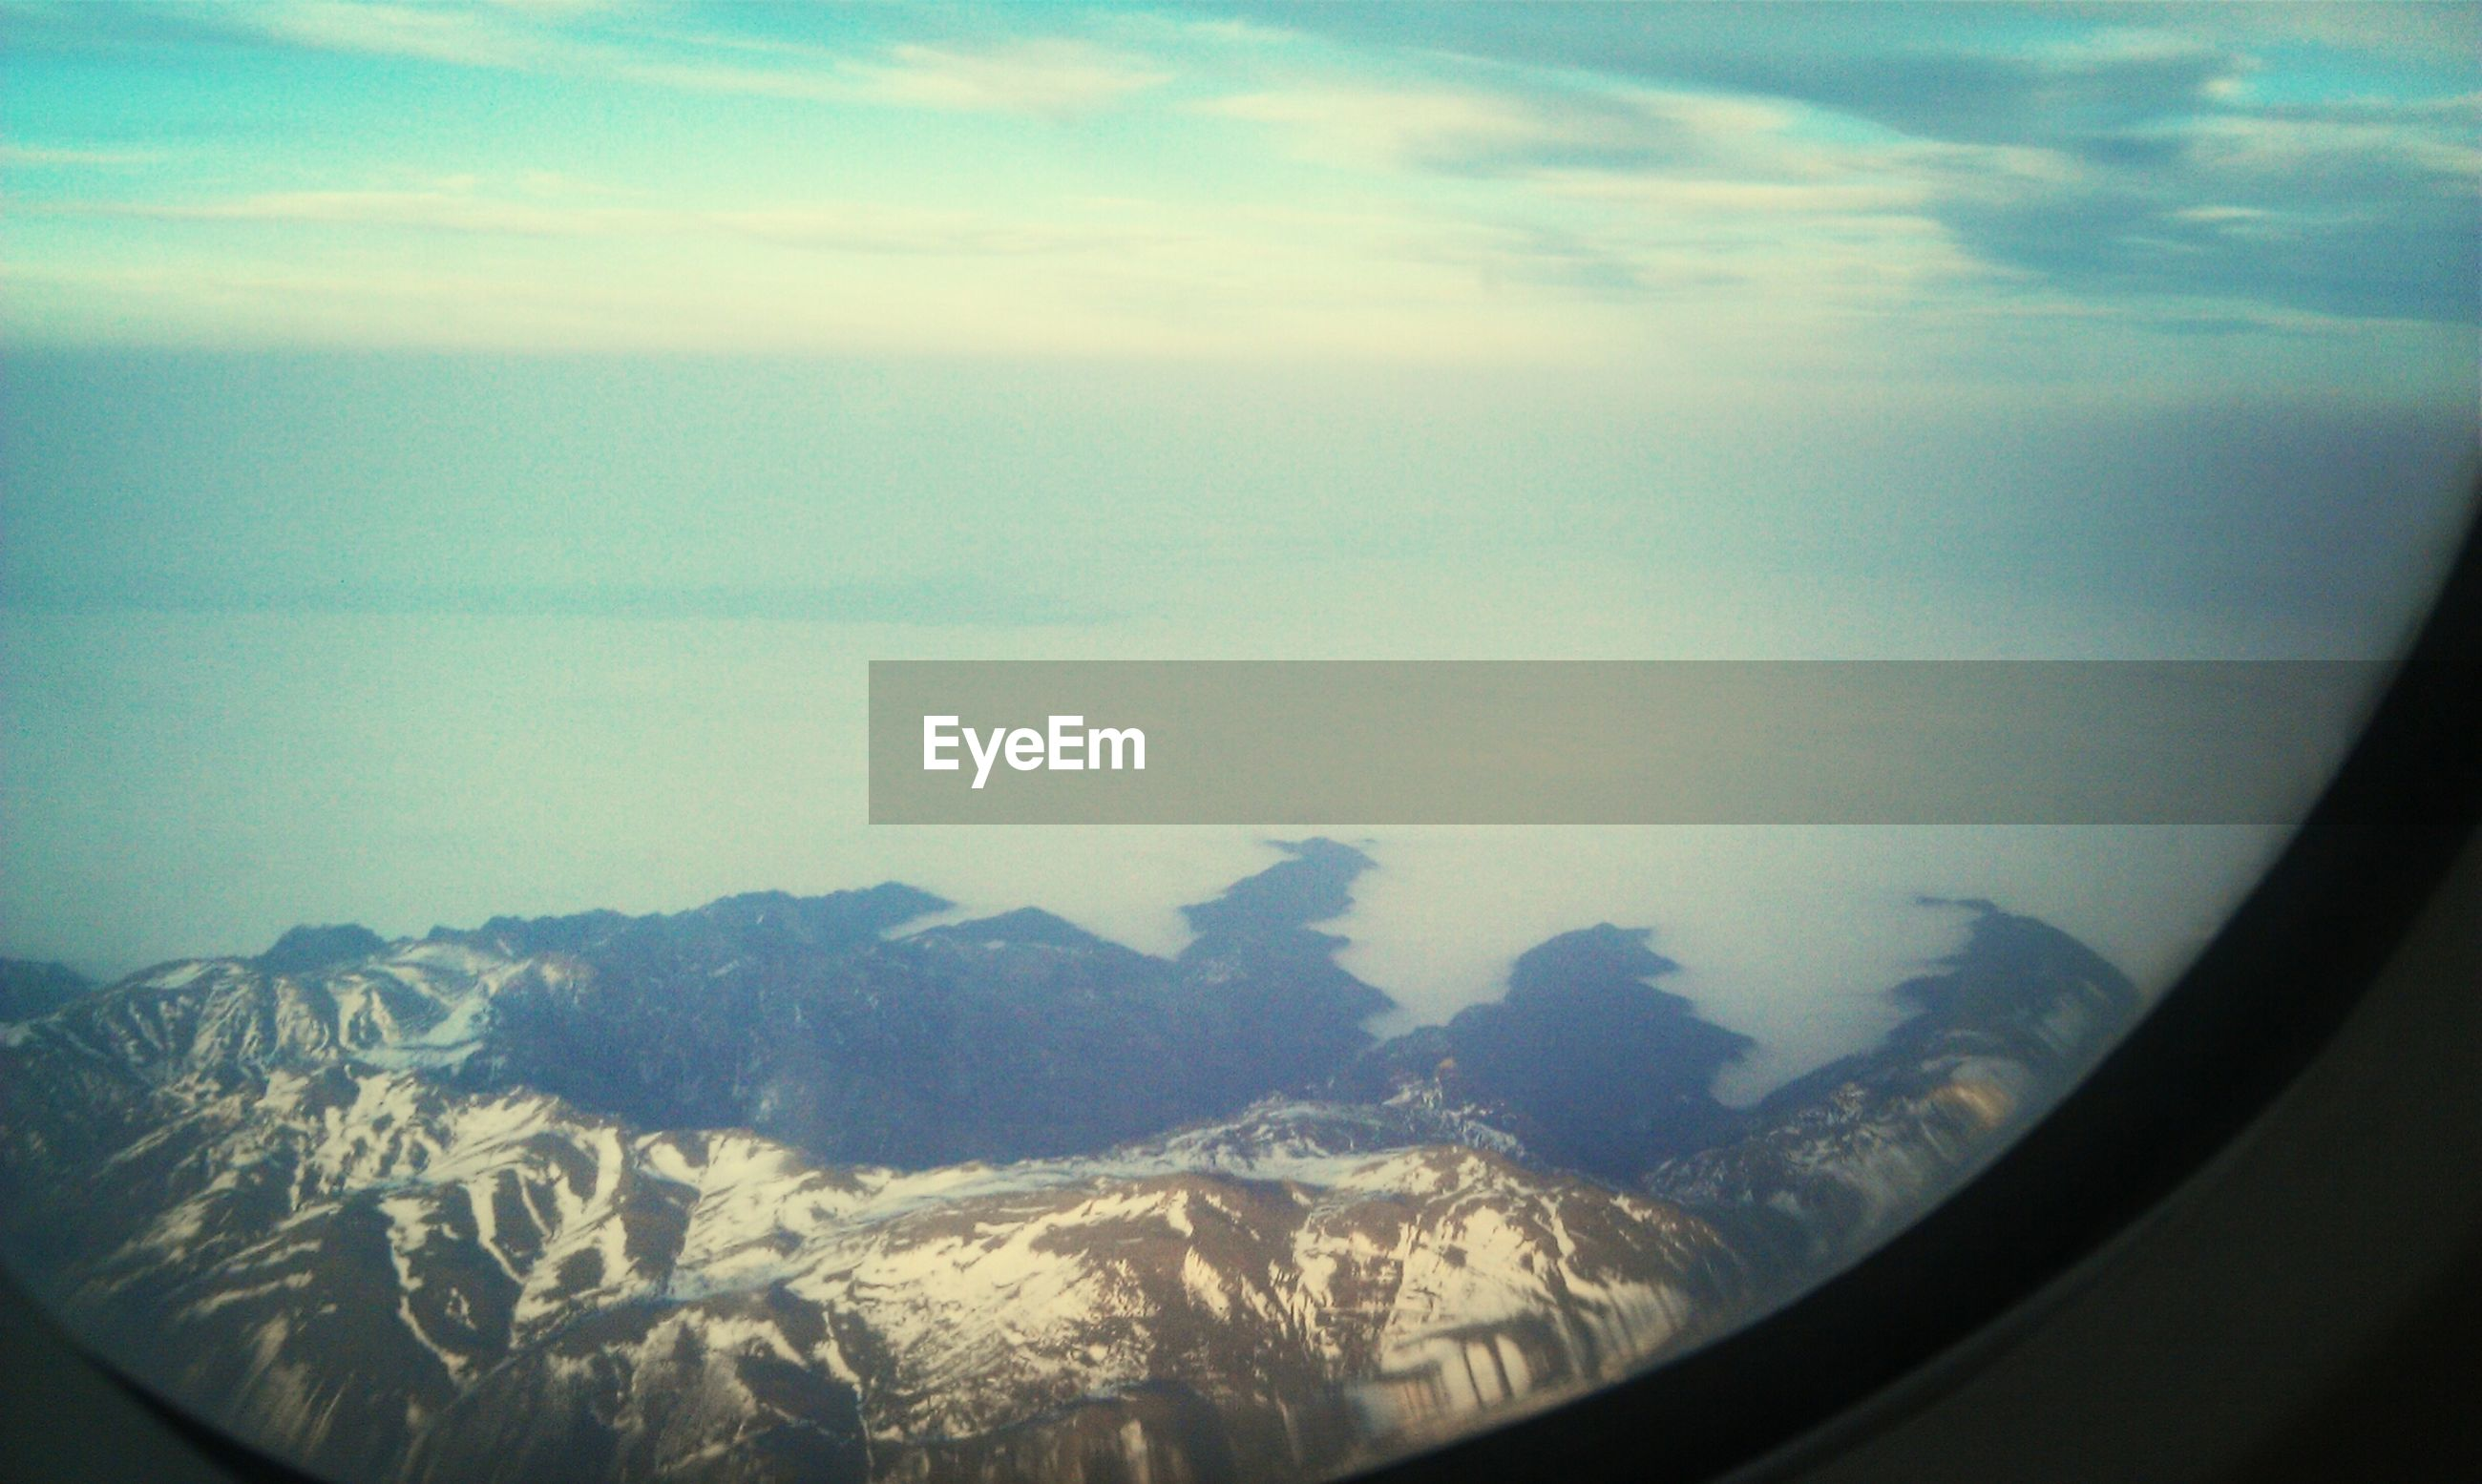 aerial view, airplane, scenics, air vehicle, landscape, mountain, snow, sky, beauty in nature, window, winter, cold temperature, tranquil scene, nature, cloud - sky, vehicle interior, aircraft wing, tranquility, transportation, mountain range